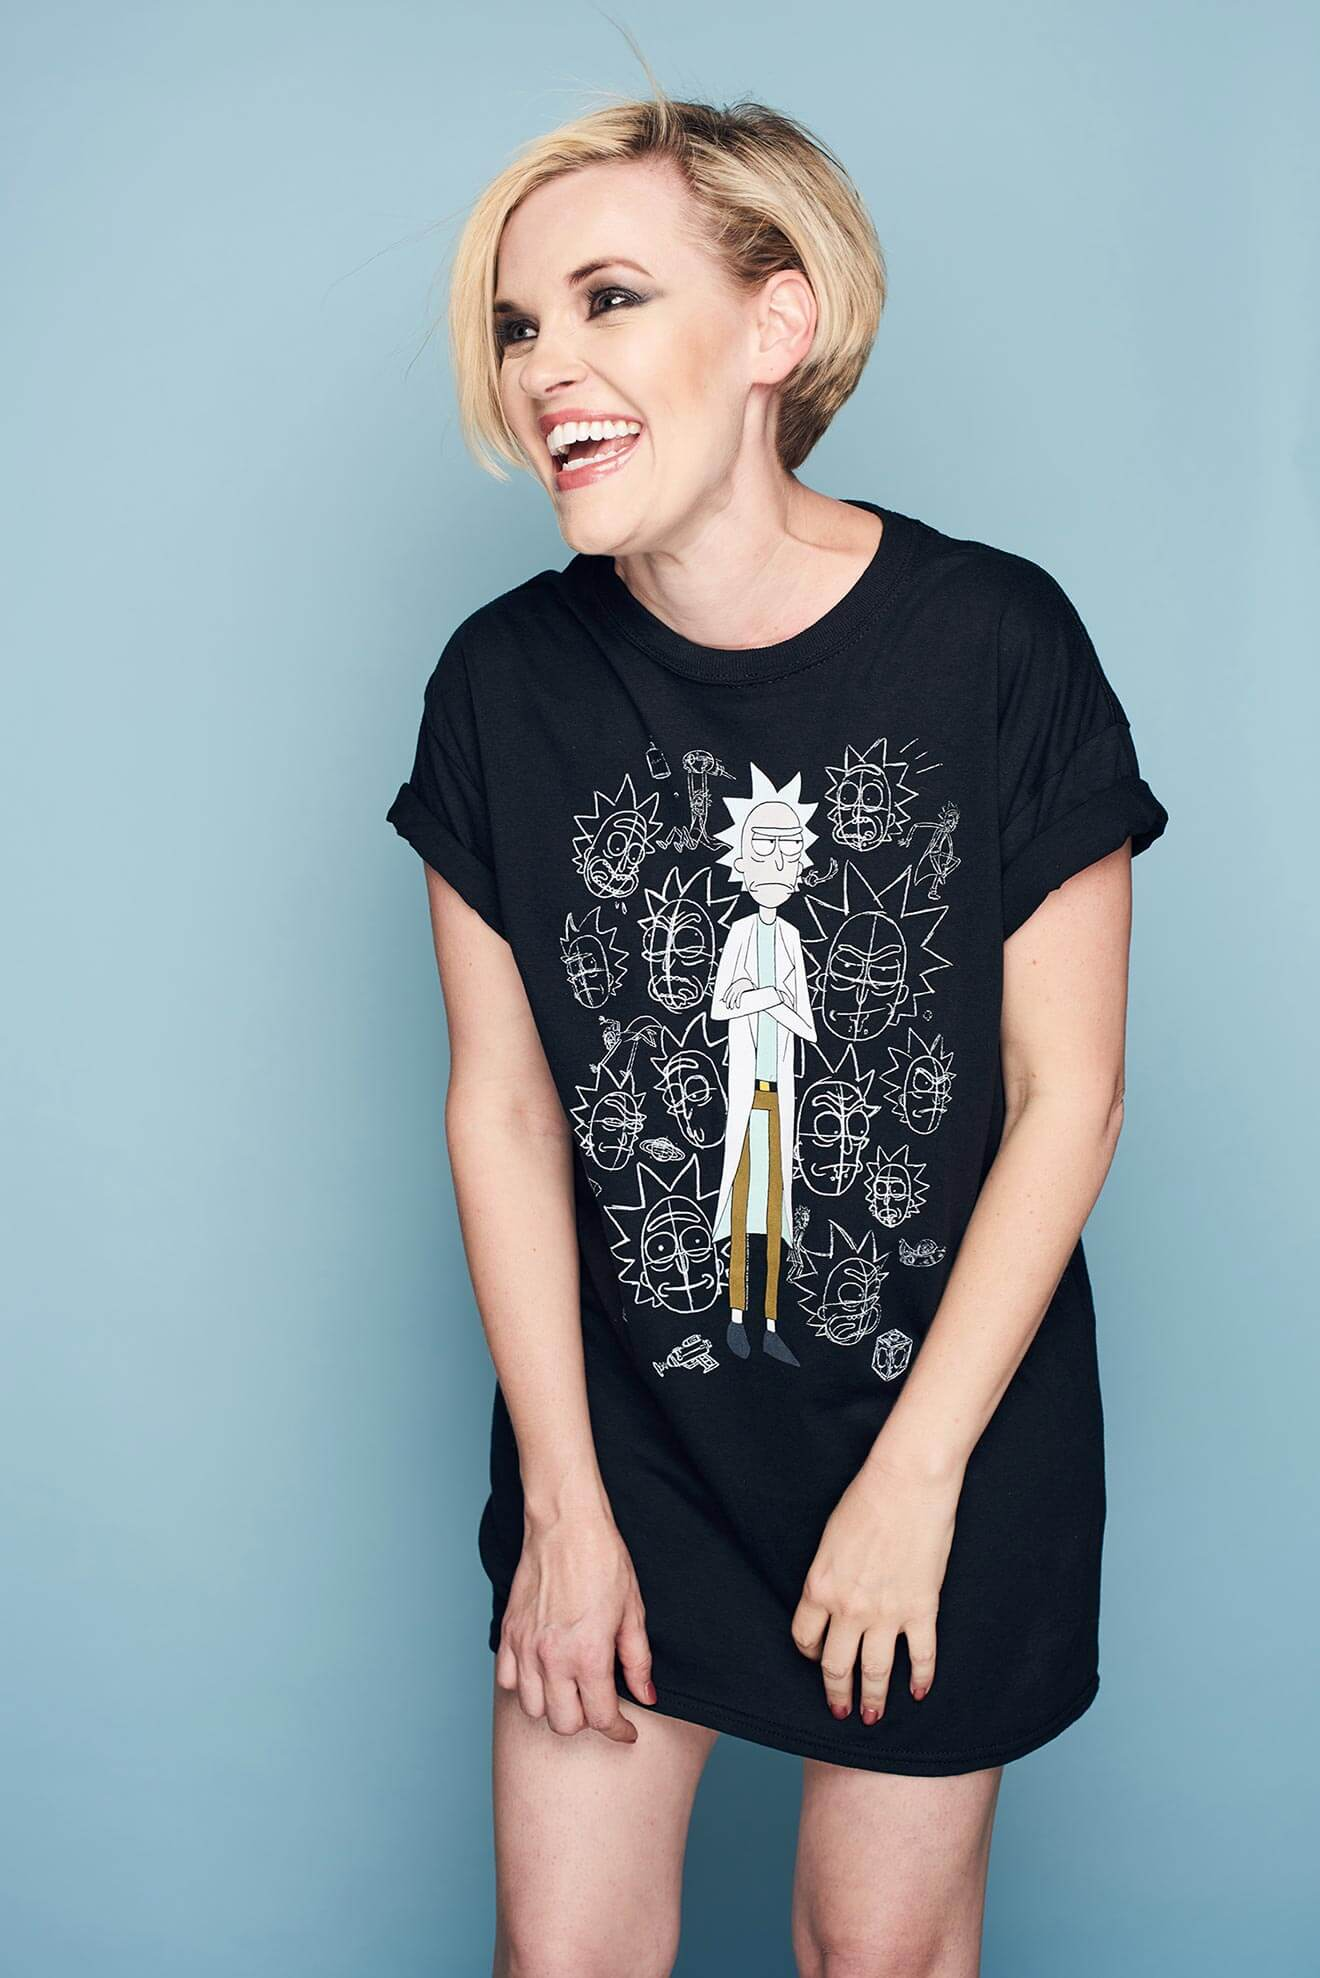 Chillin' with Kari Wahlgren t-shirt on blue, laughing